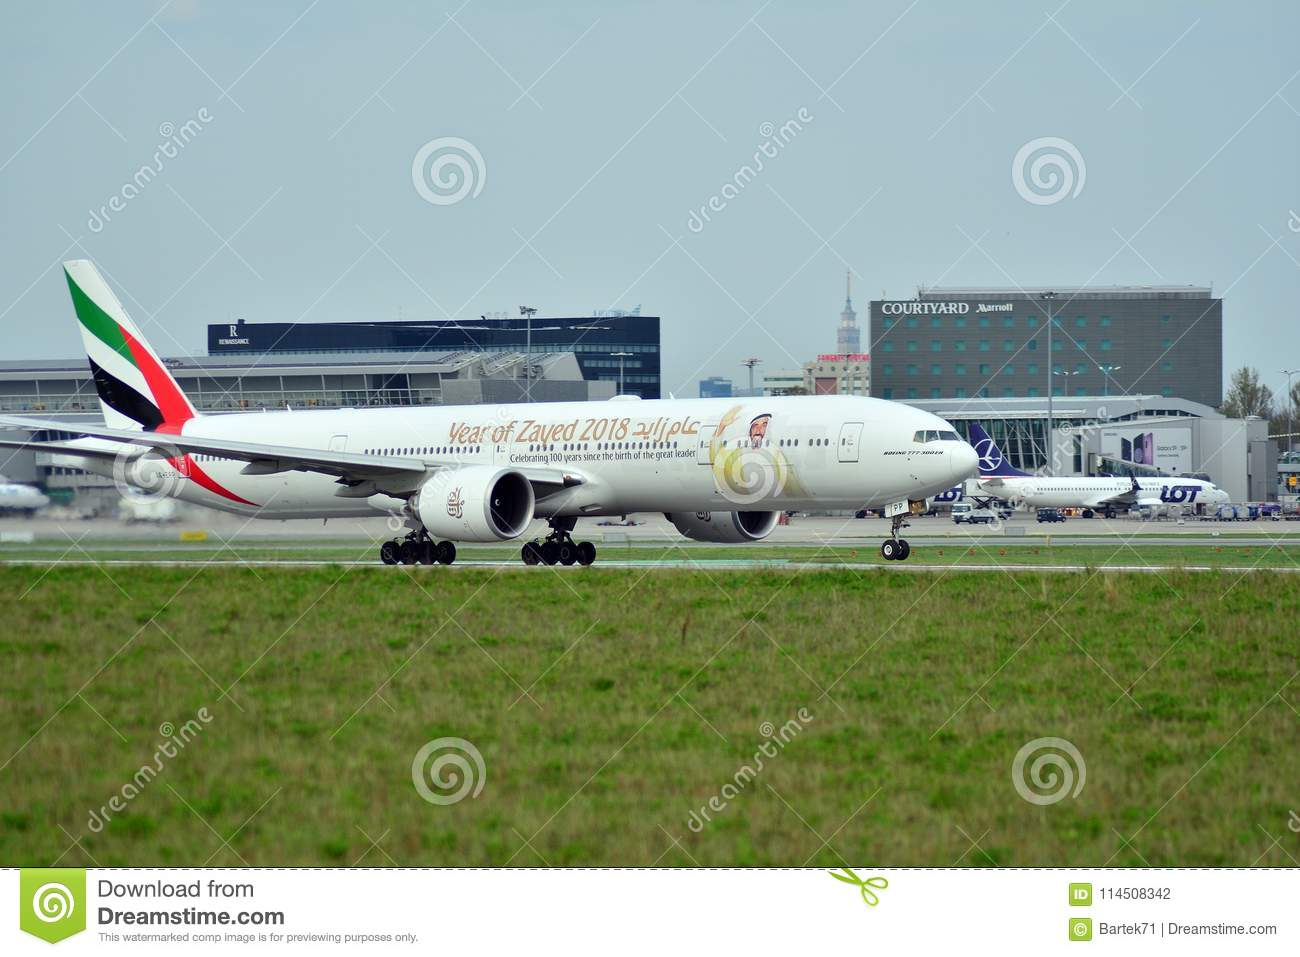 Passenger airplane Boeing 777-300 ER Emirates Airlines is flying from the runway of Warsaw Chopin Airport